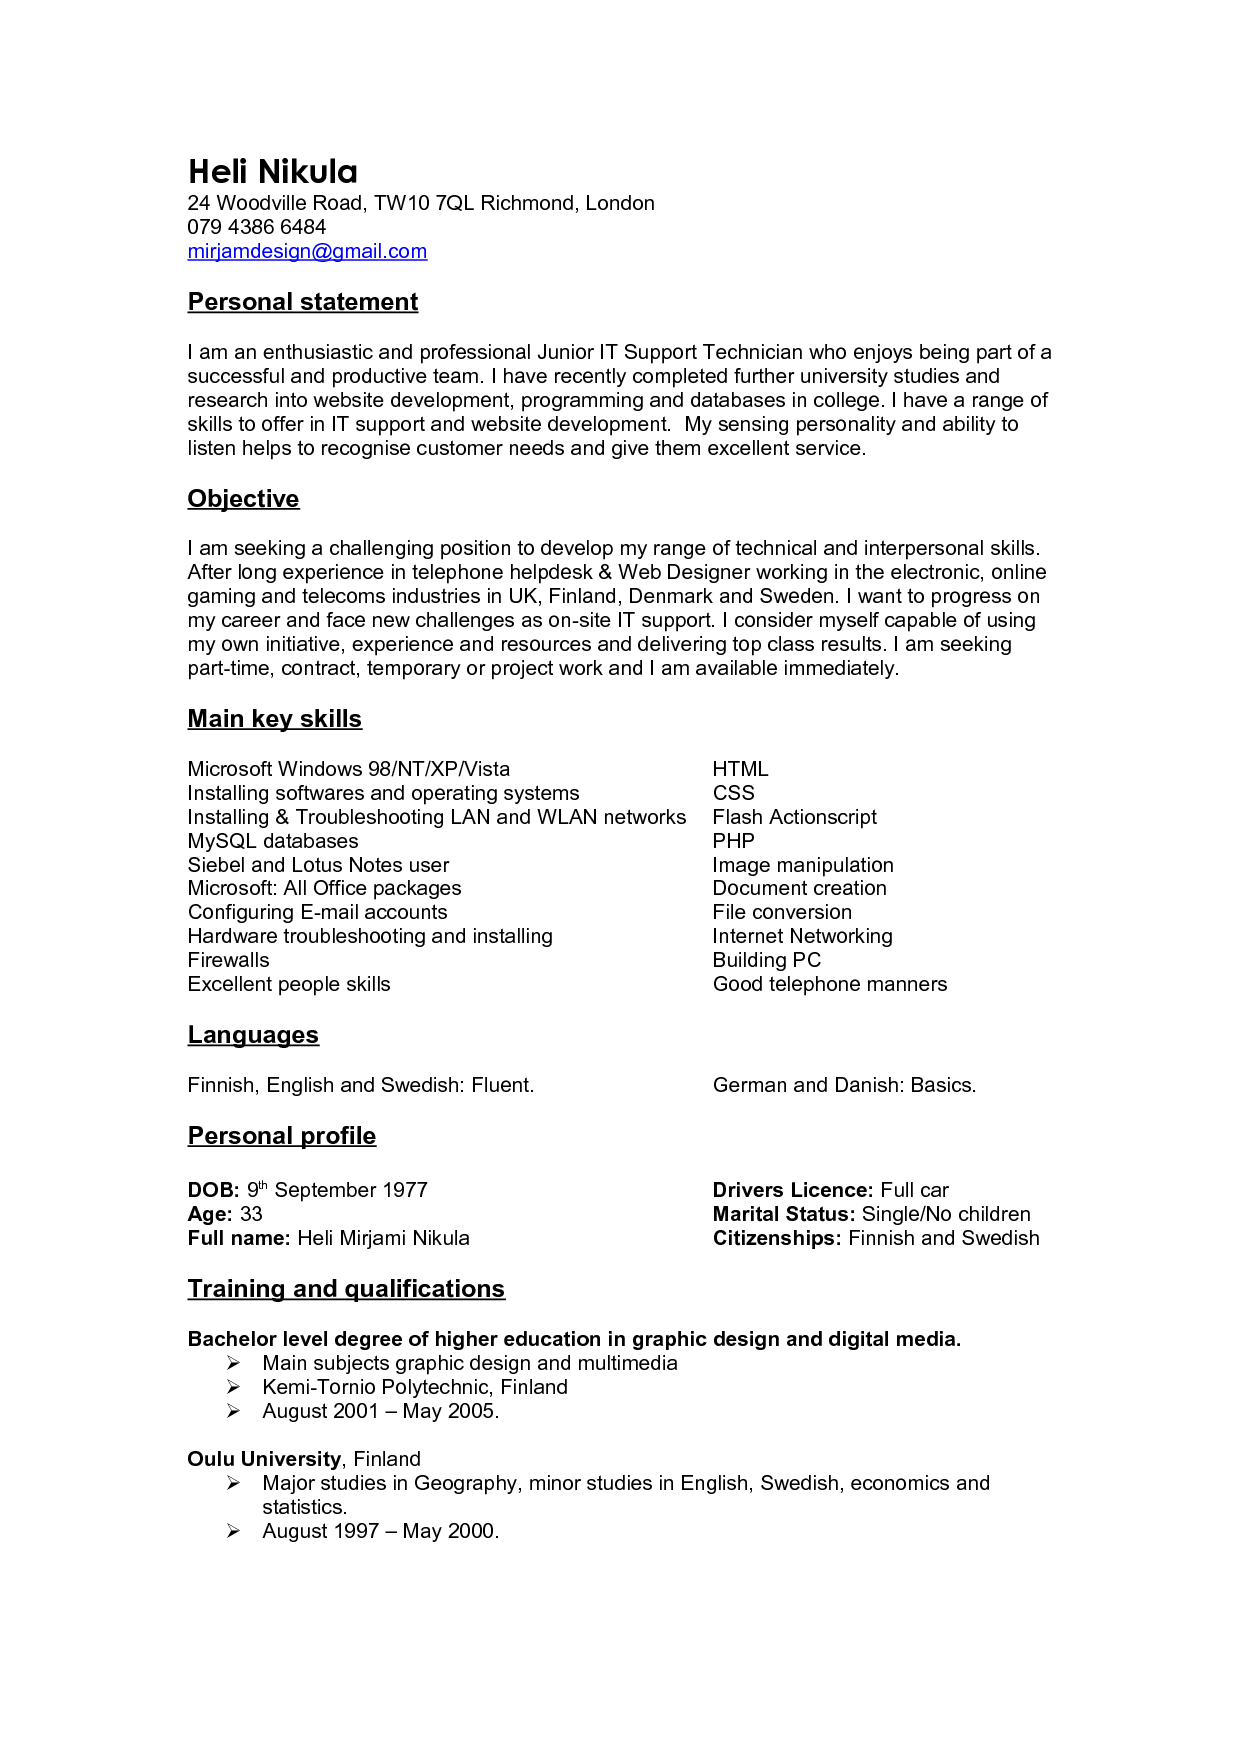 resume with branding statement